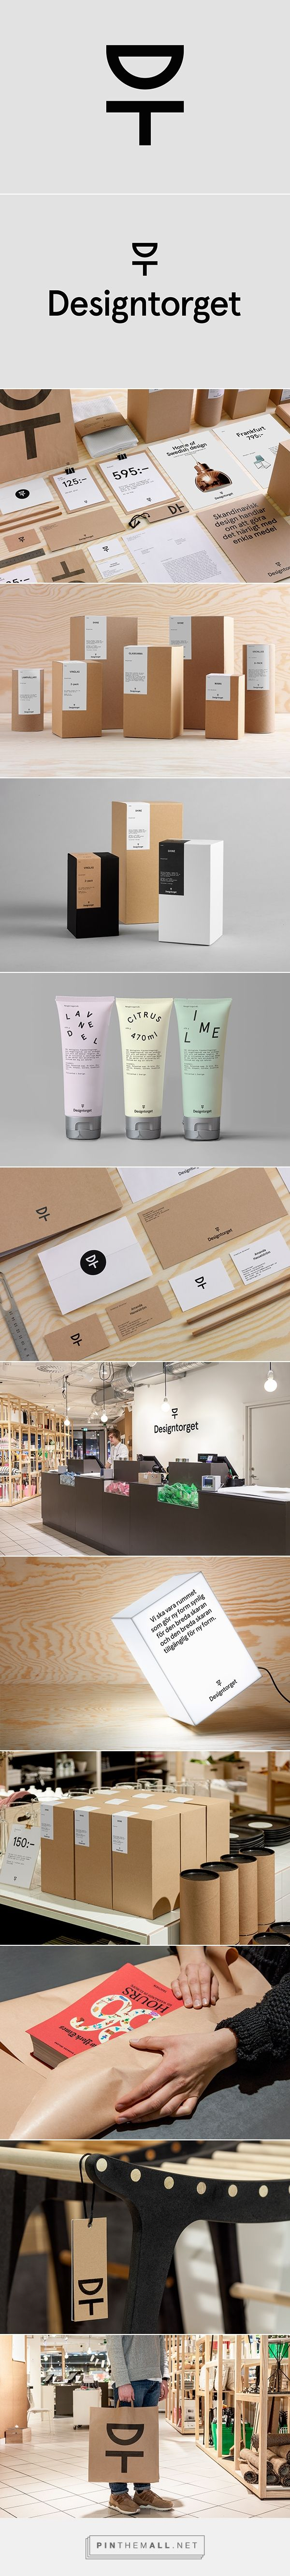 Designtorget on Behance by Kurppa Hosk curated by Packaging Diva PD. Iconic Swedish packaging design.